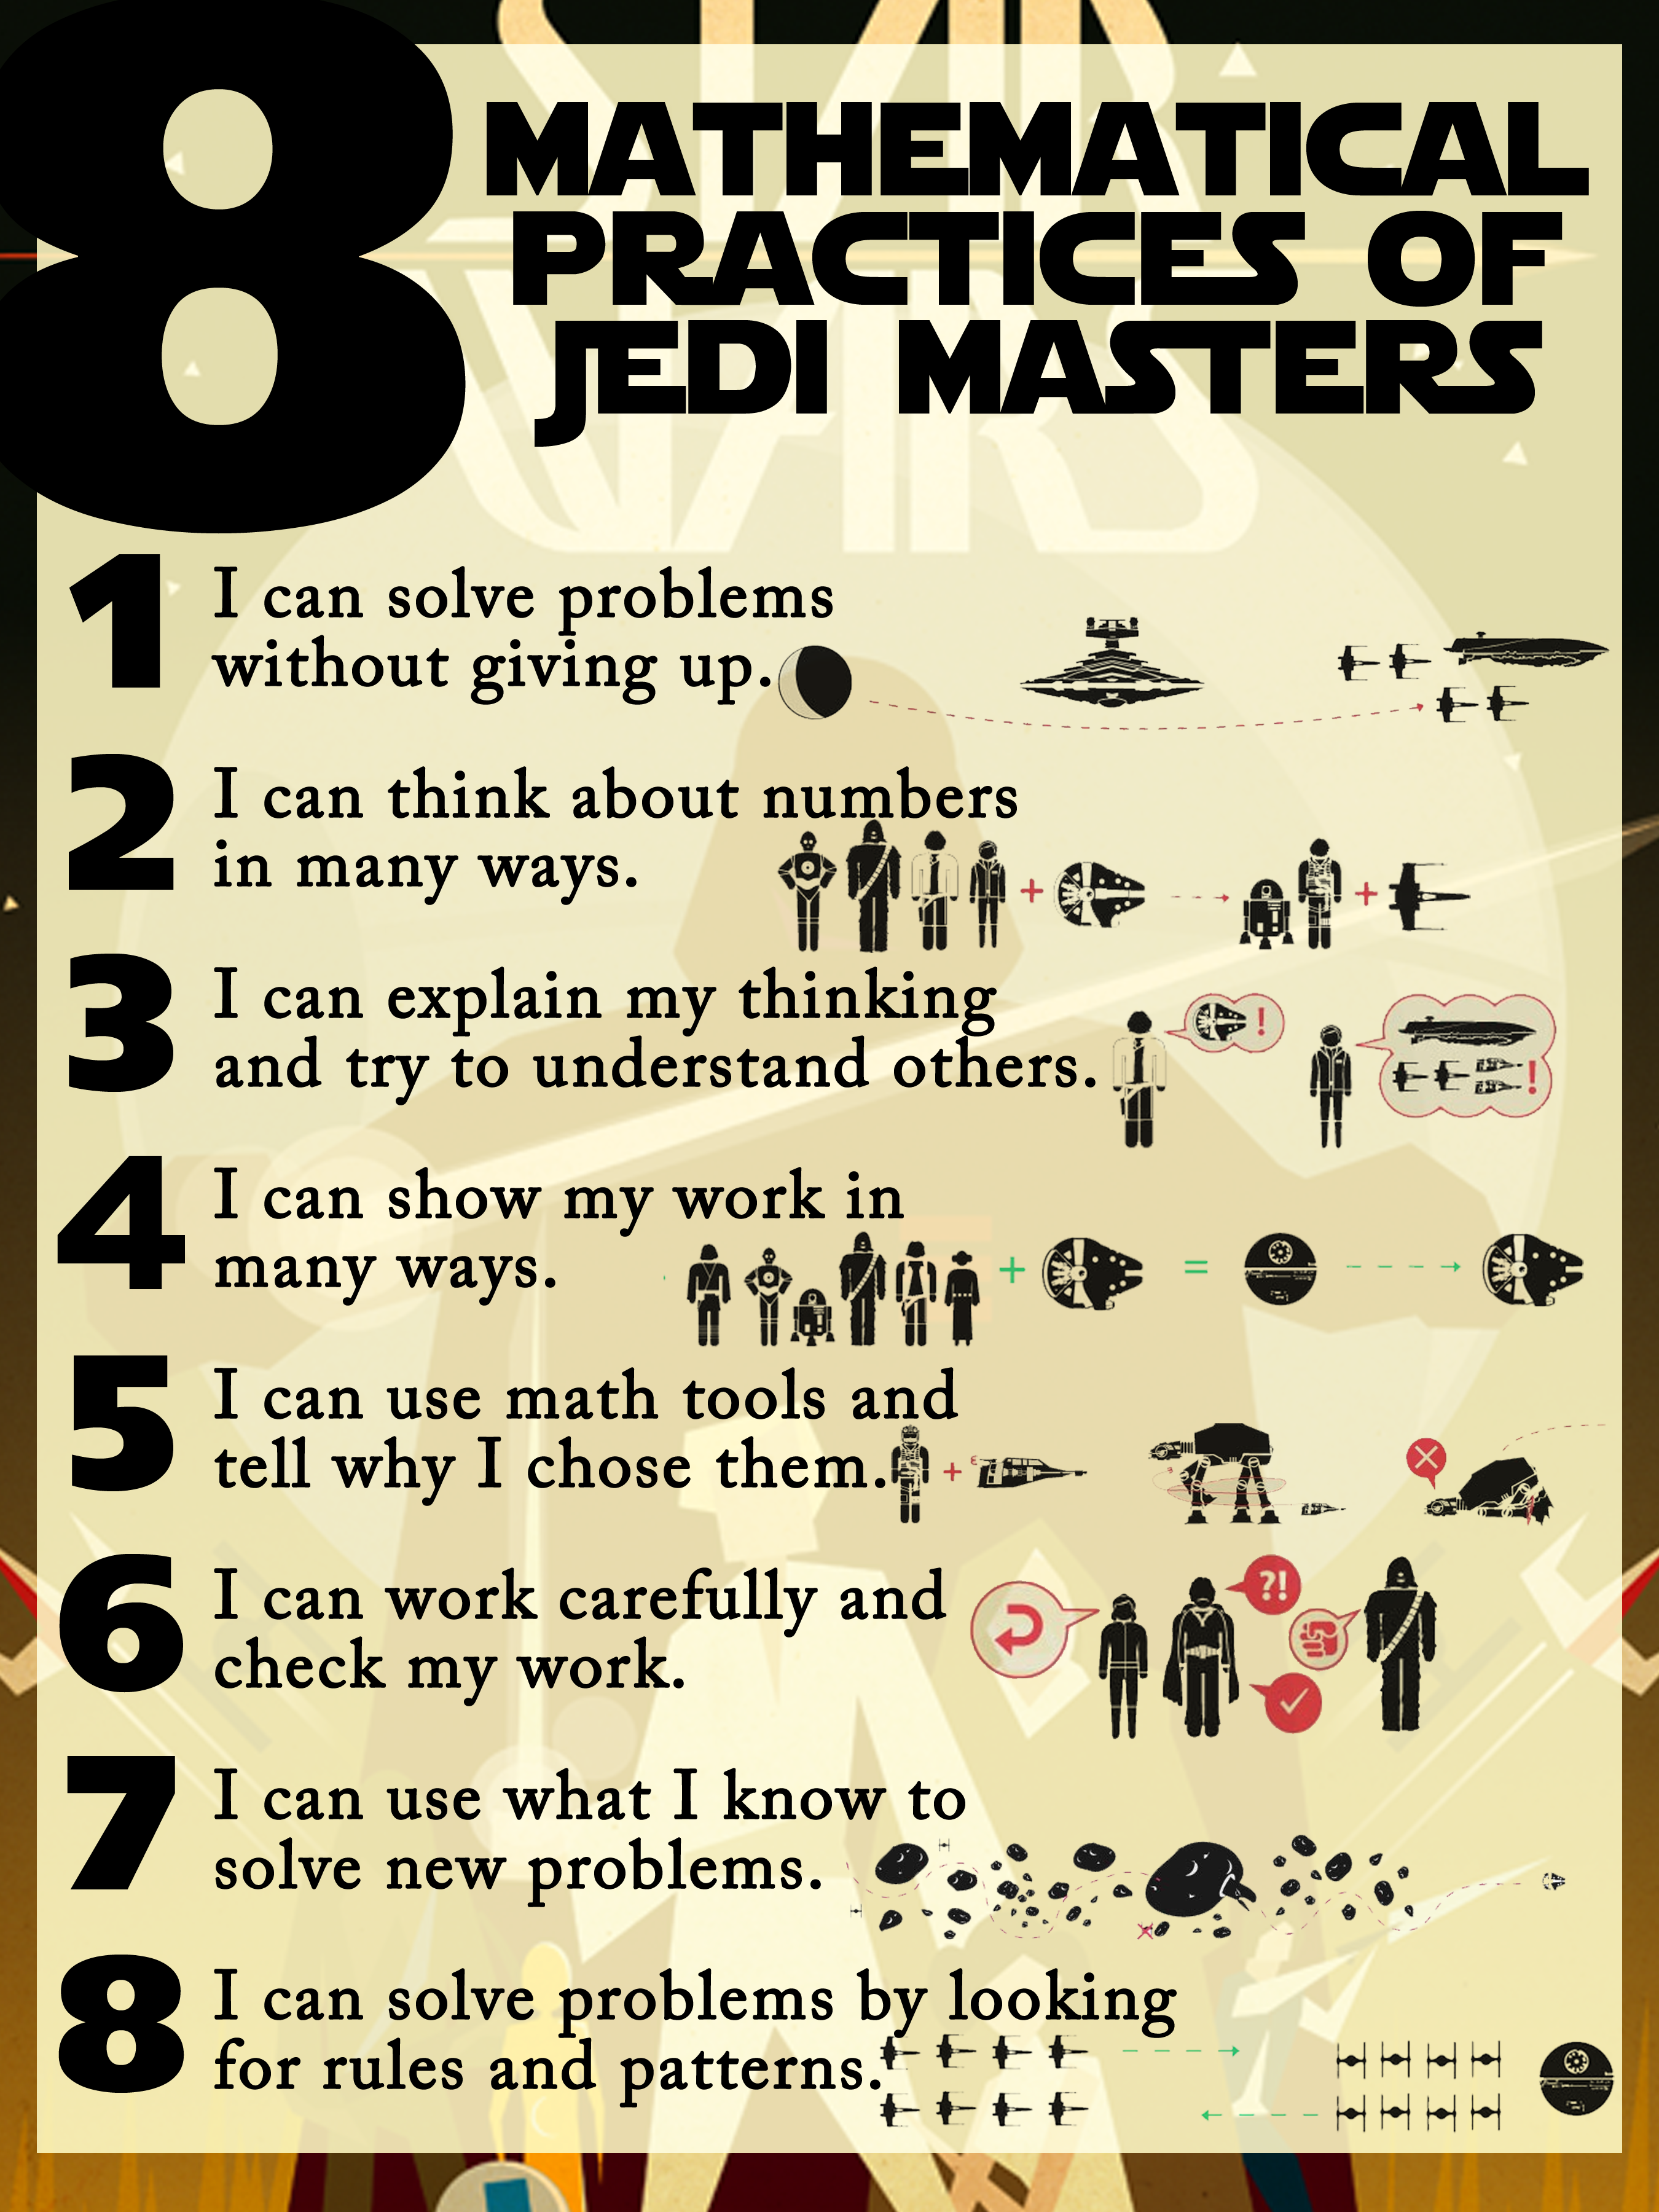 Star wars posters mtbos msmathchat math poster math and star star wars math posters math practices standards based grading fixedgrowth mindsets fandeluxe Image collections